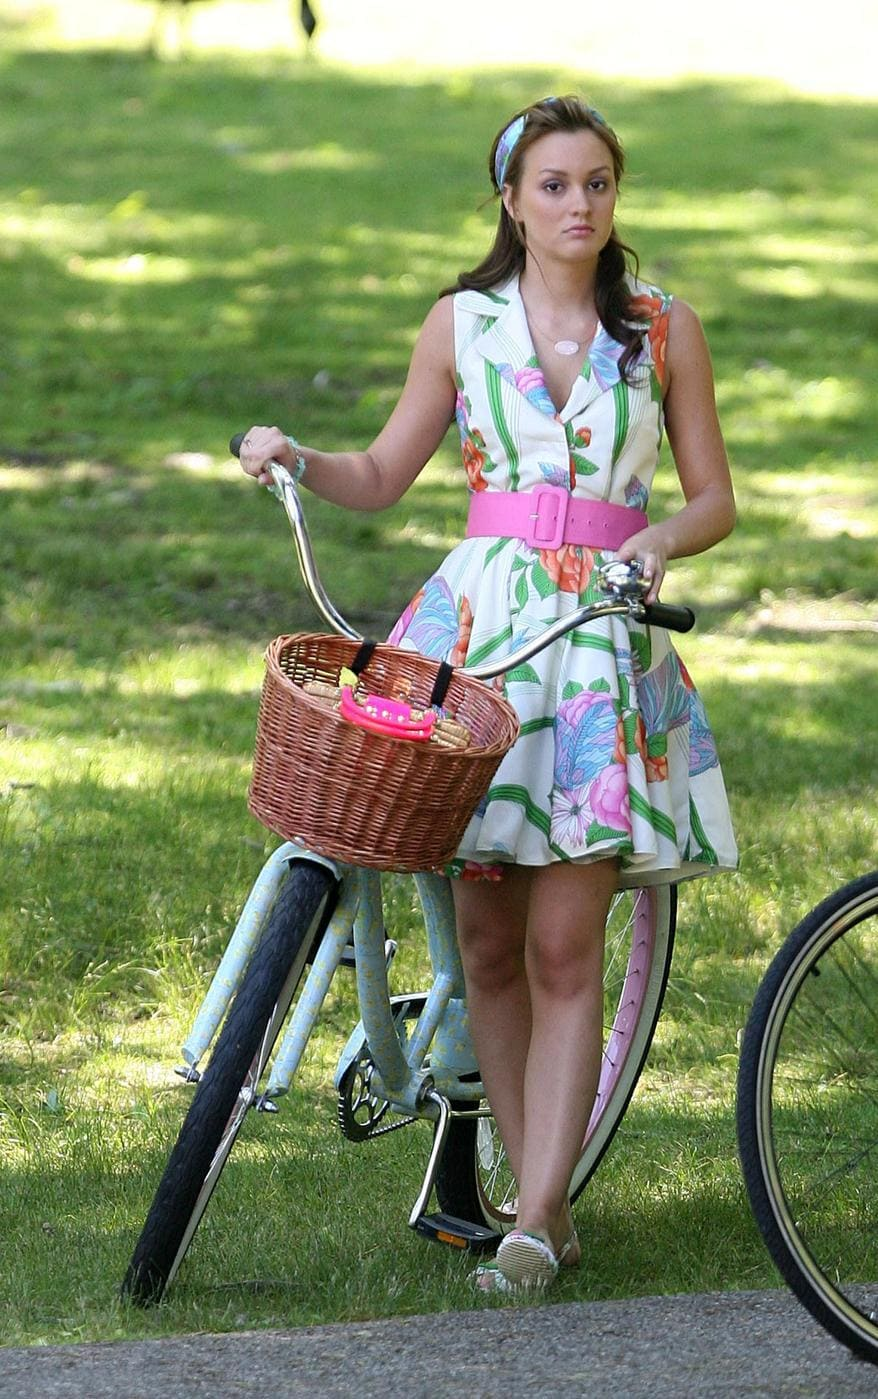 Blair Waldorf with a bike wearing a floral dress with a pink belt